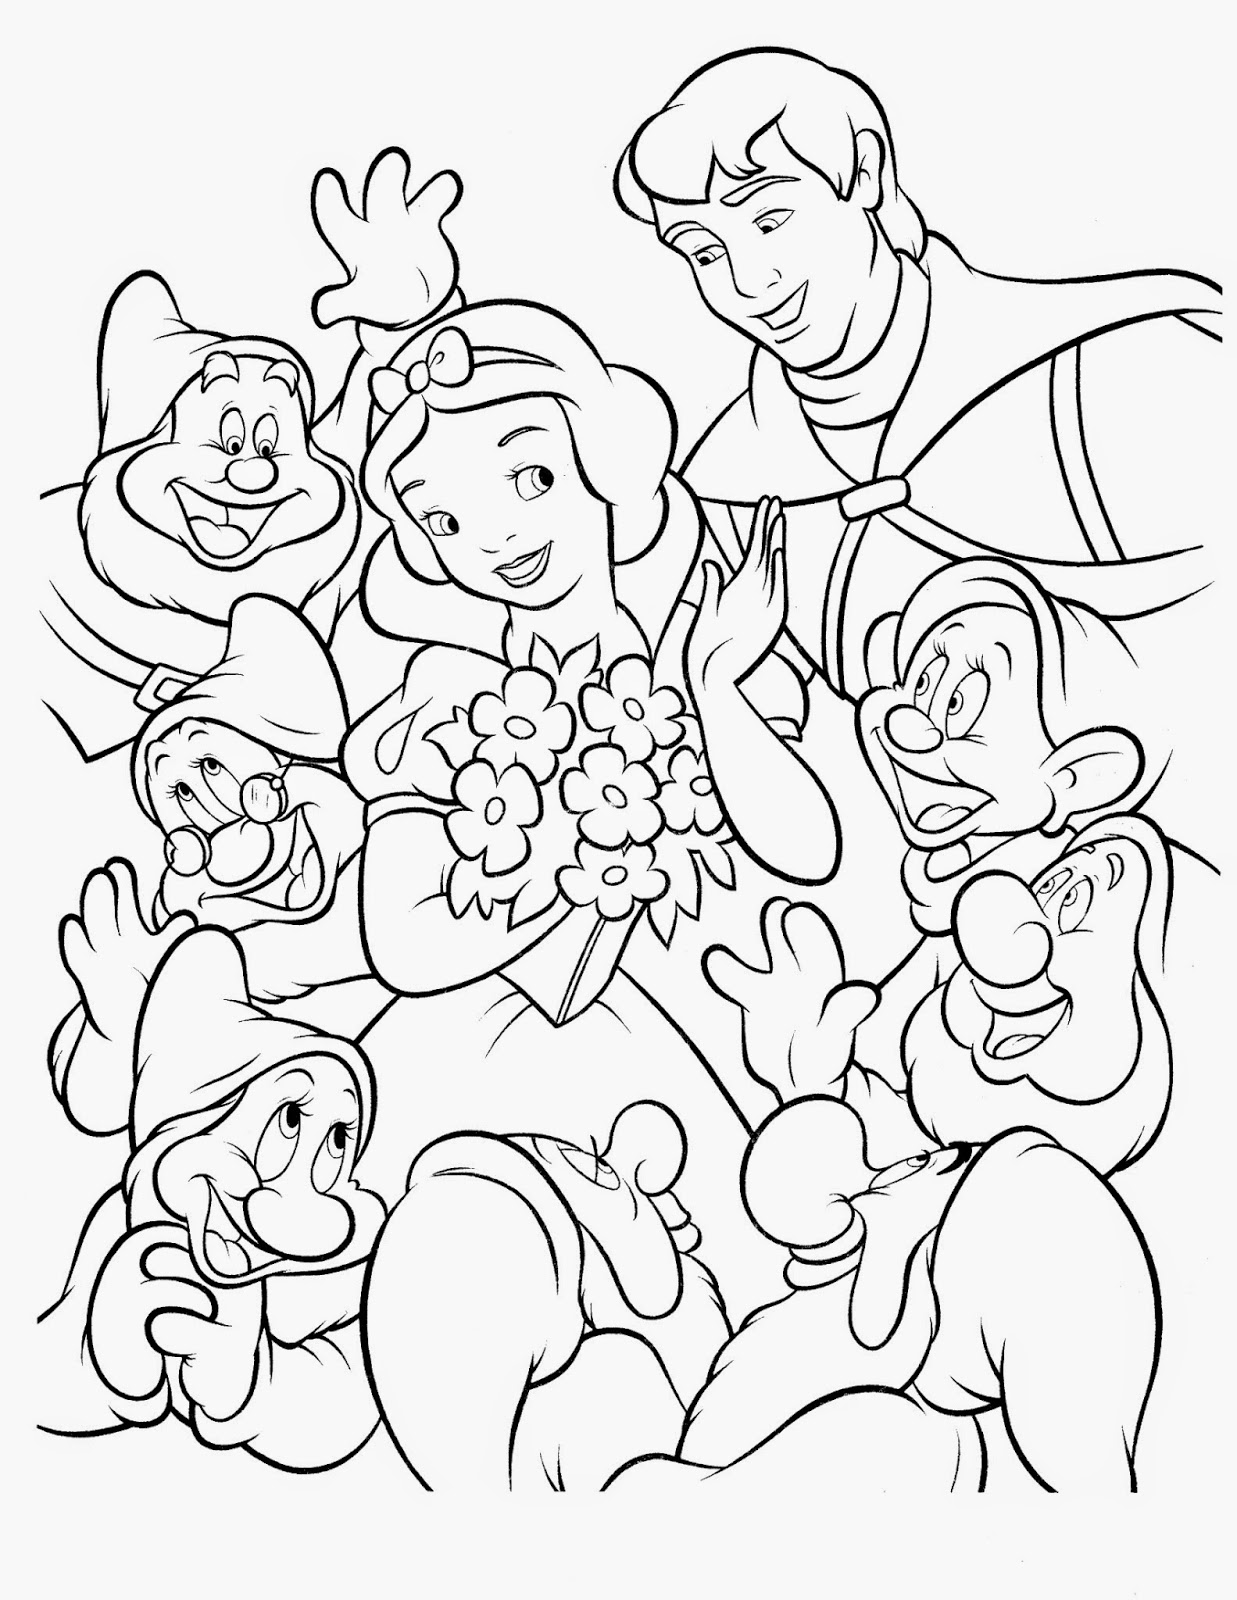 free snow white coloring pages snow white coloring pages best coloring pages for kids coloring white pages free snow